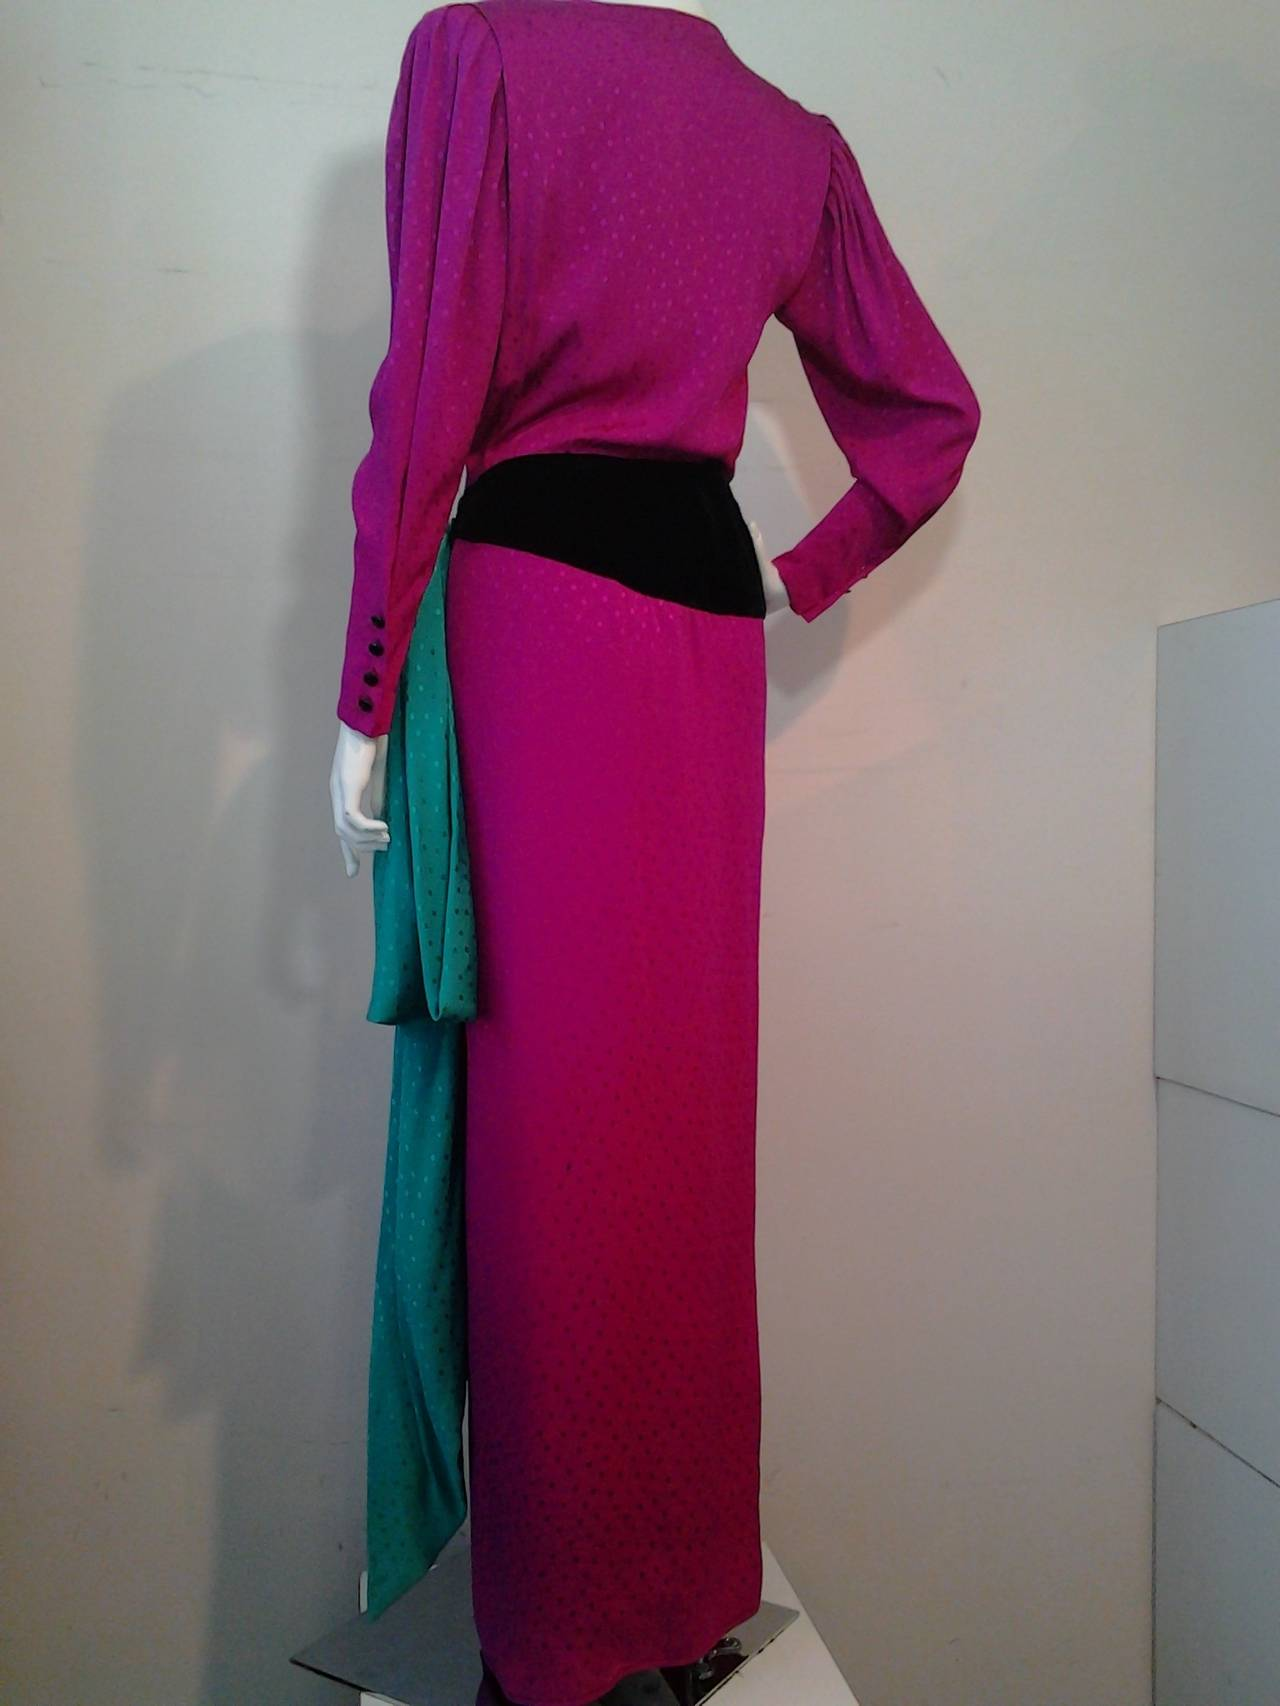 1980s Emanuel Ungaro Fuchsia and Emerald Silk Wrap Evening Gown In Excellent Condition For Sale In San Francisco, CA